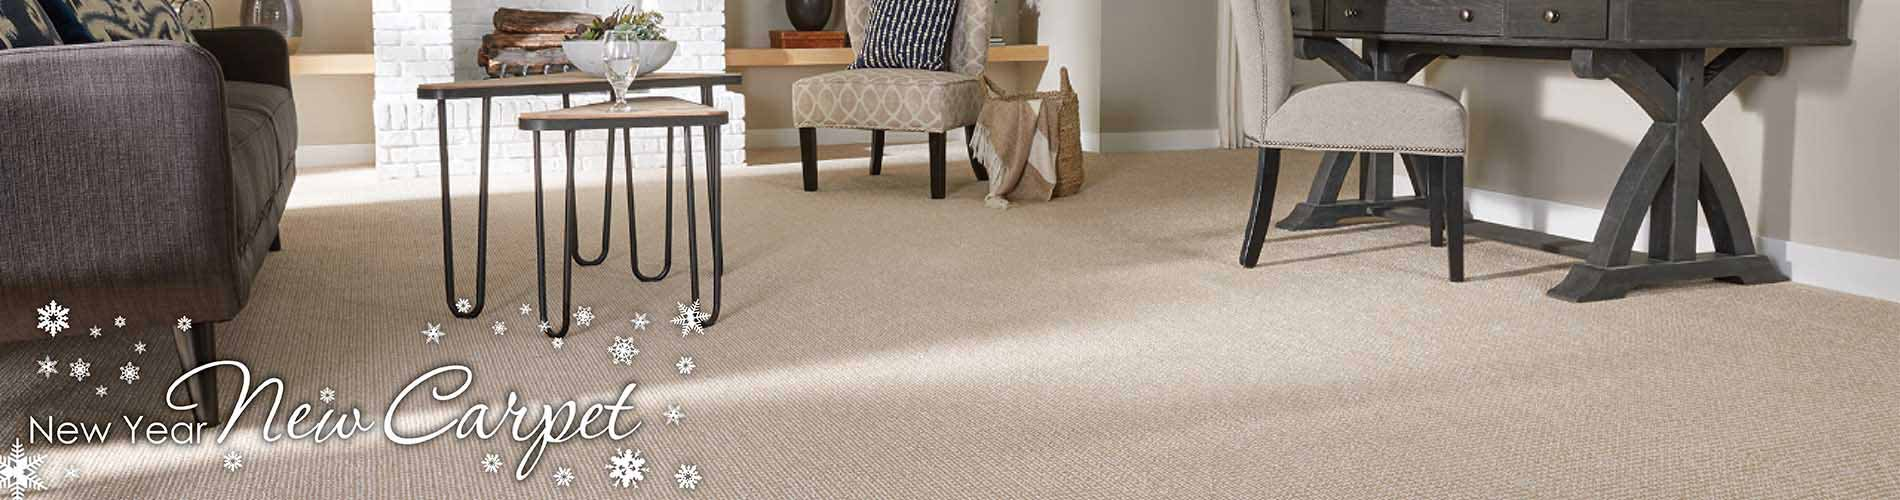 Save on carpet during our New Year New Floor sale at Fine Floorz in Walnut Creek